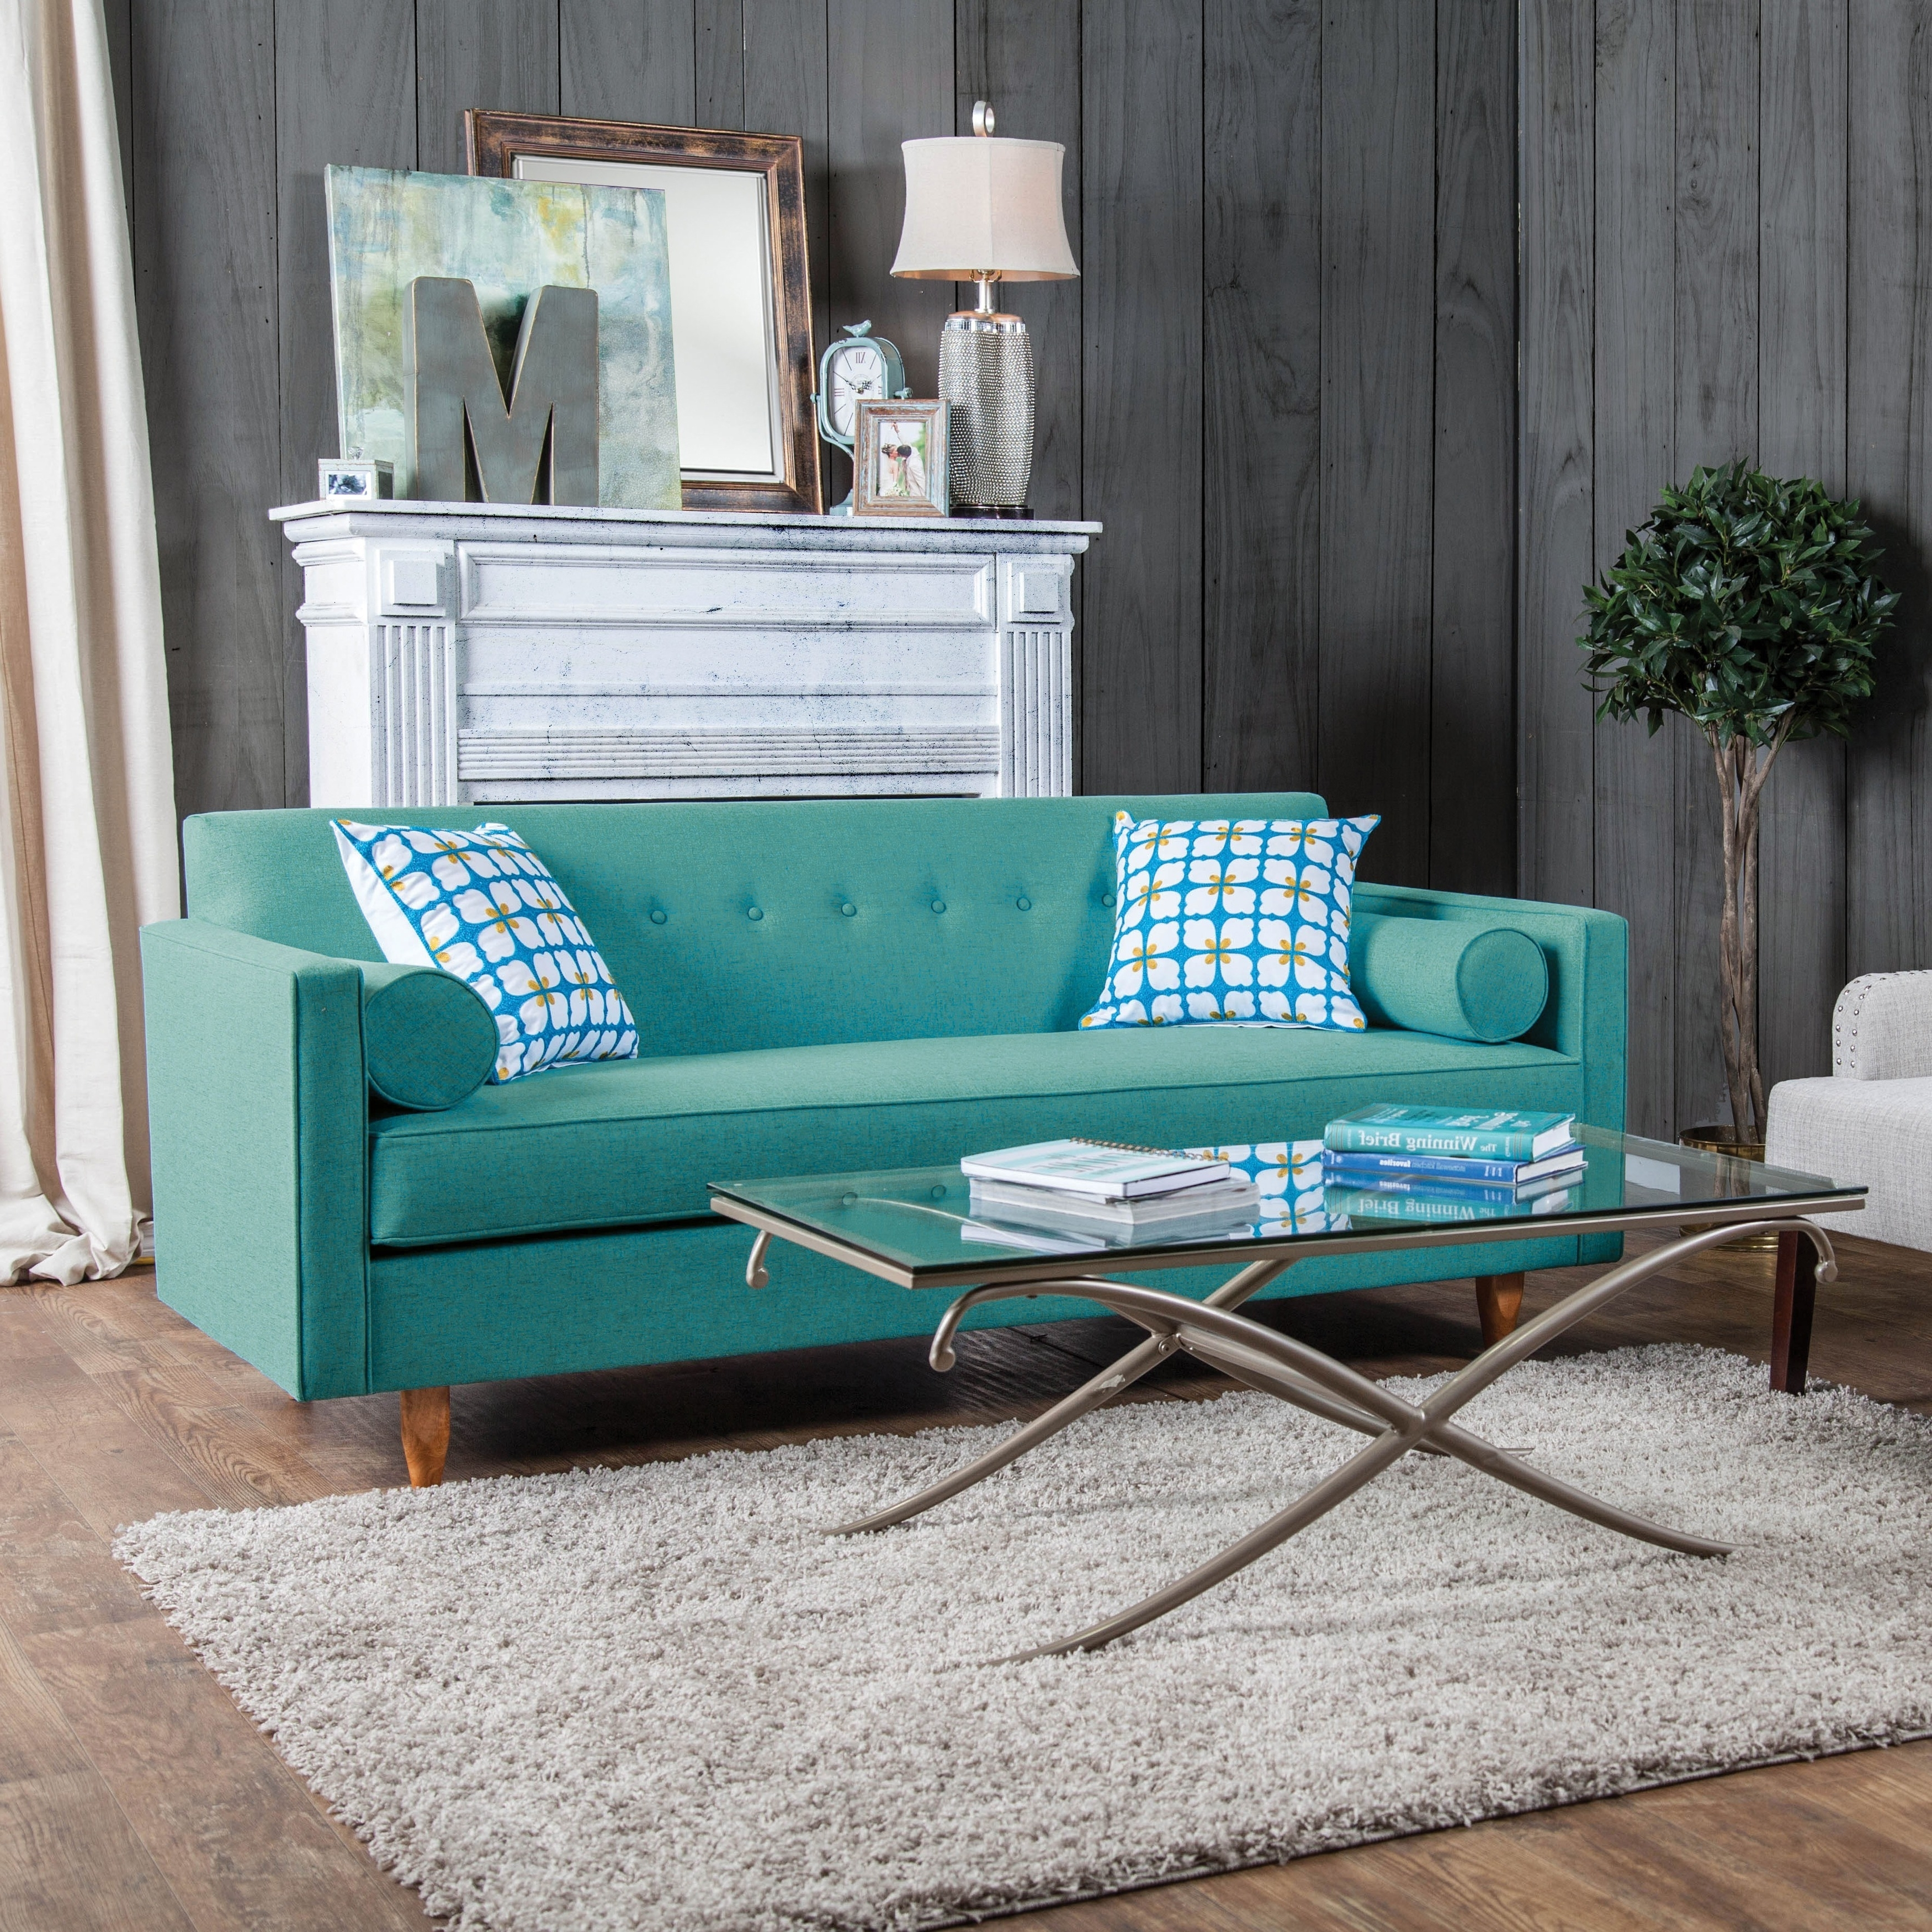 Living Room : Turquoise Couch Kids Couch Turquoise Sofas Regarding Fashionable Turquoise Sofas (View 5 of 15)